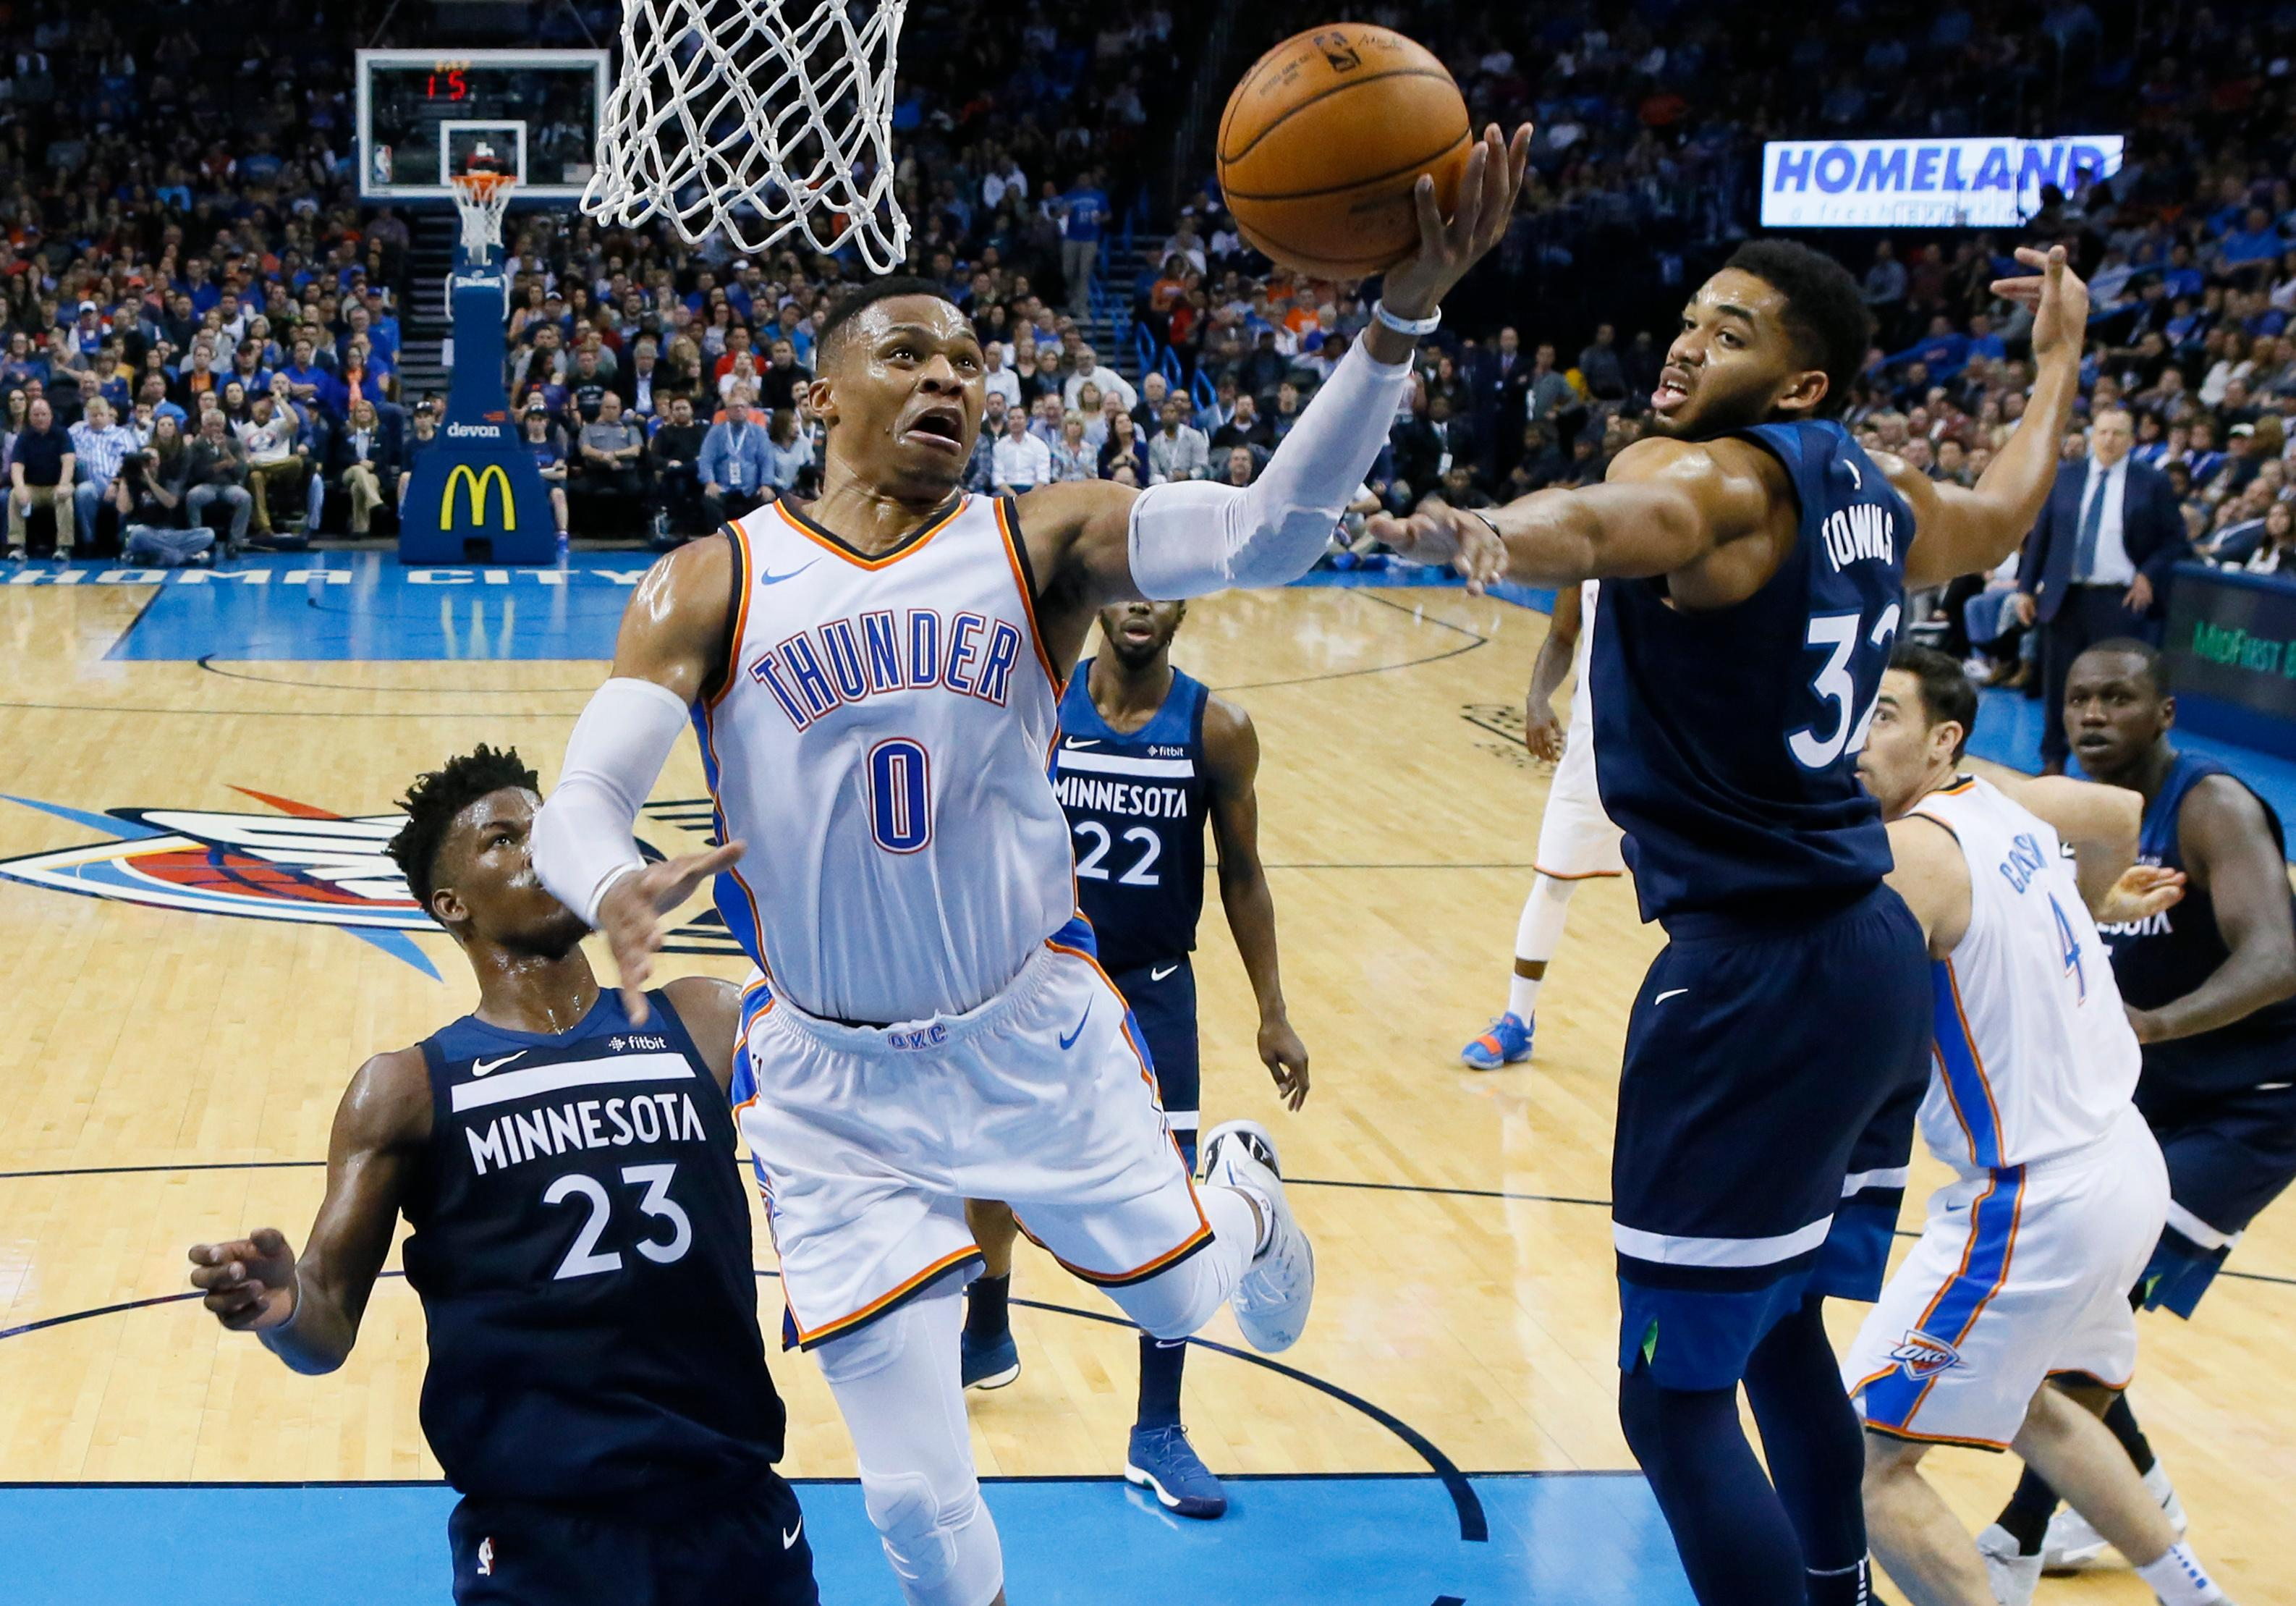 Oklahoma City Thunder guard Russell Westbrook (0) shoots between Minnesota Timberwolves guard Jimmy Butler (23) and center Karl-Anthony Towns during the second quarter of an NBA basketball game in Oklahoma City, Friday, Dec. 1, 2017. (AP Photo/Sue Ogrocki)